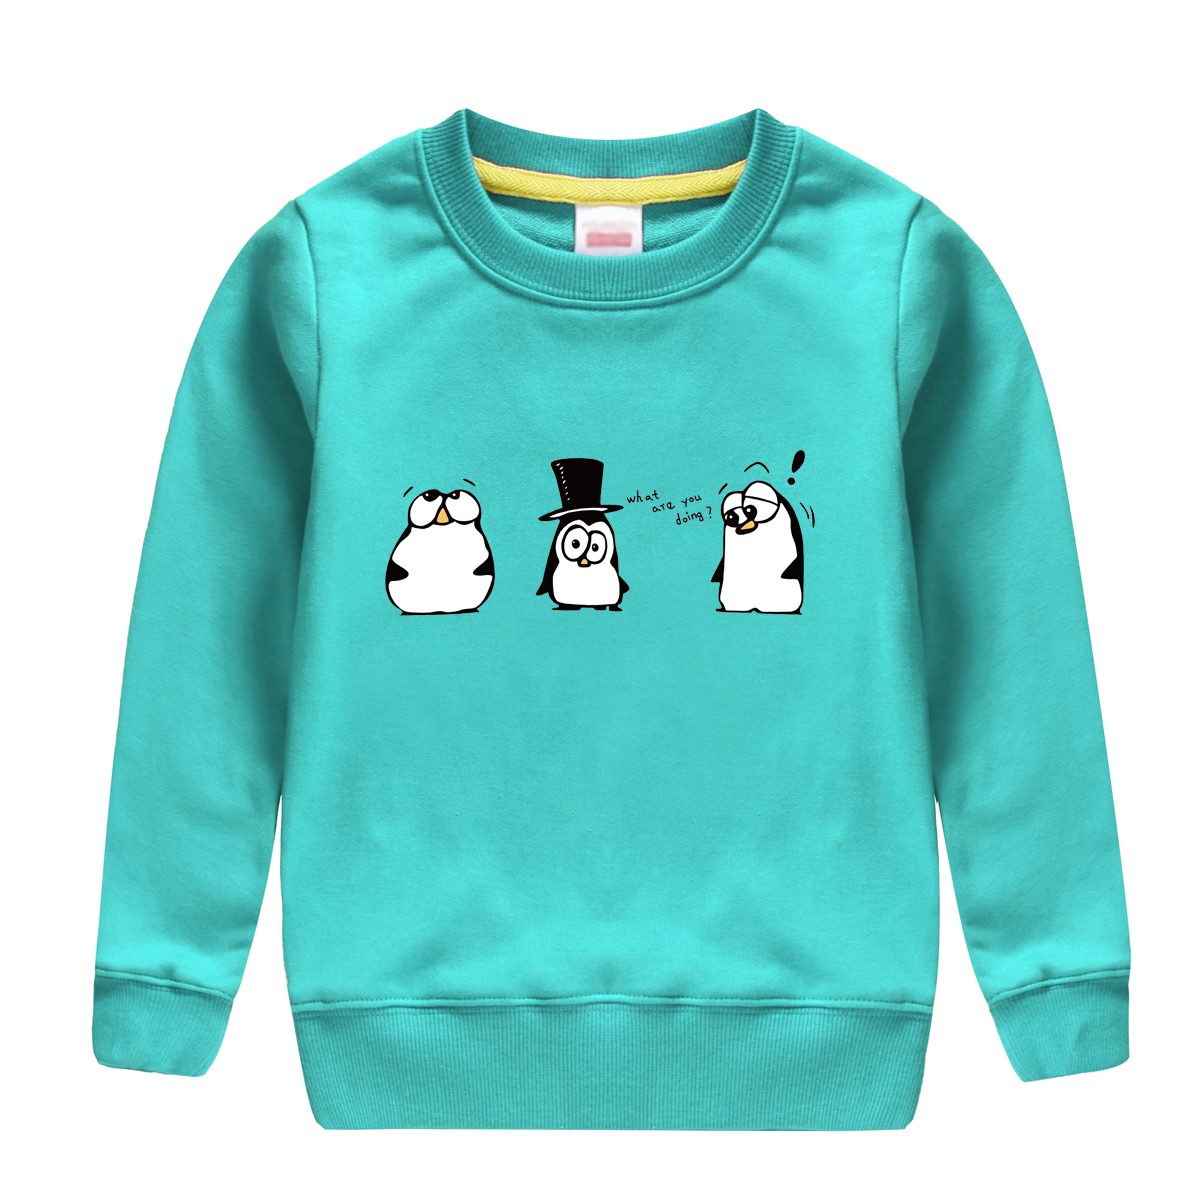 "HTB1JlzvfwDD8KJjy0Fdq6AjvXXa4 - ""what are you doing""pattern printed 2017 new fashion cotton sweatshirt , keeping warm and Non-fading , design for children"